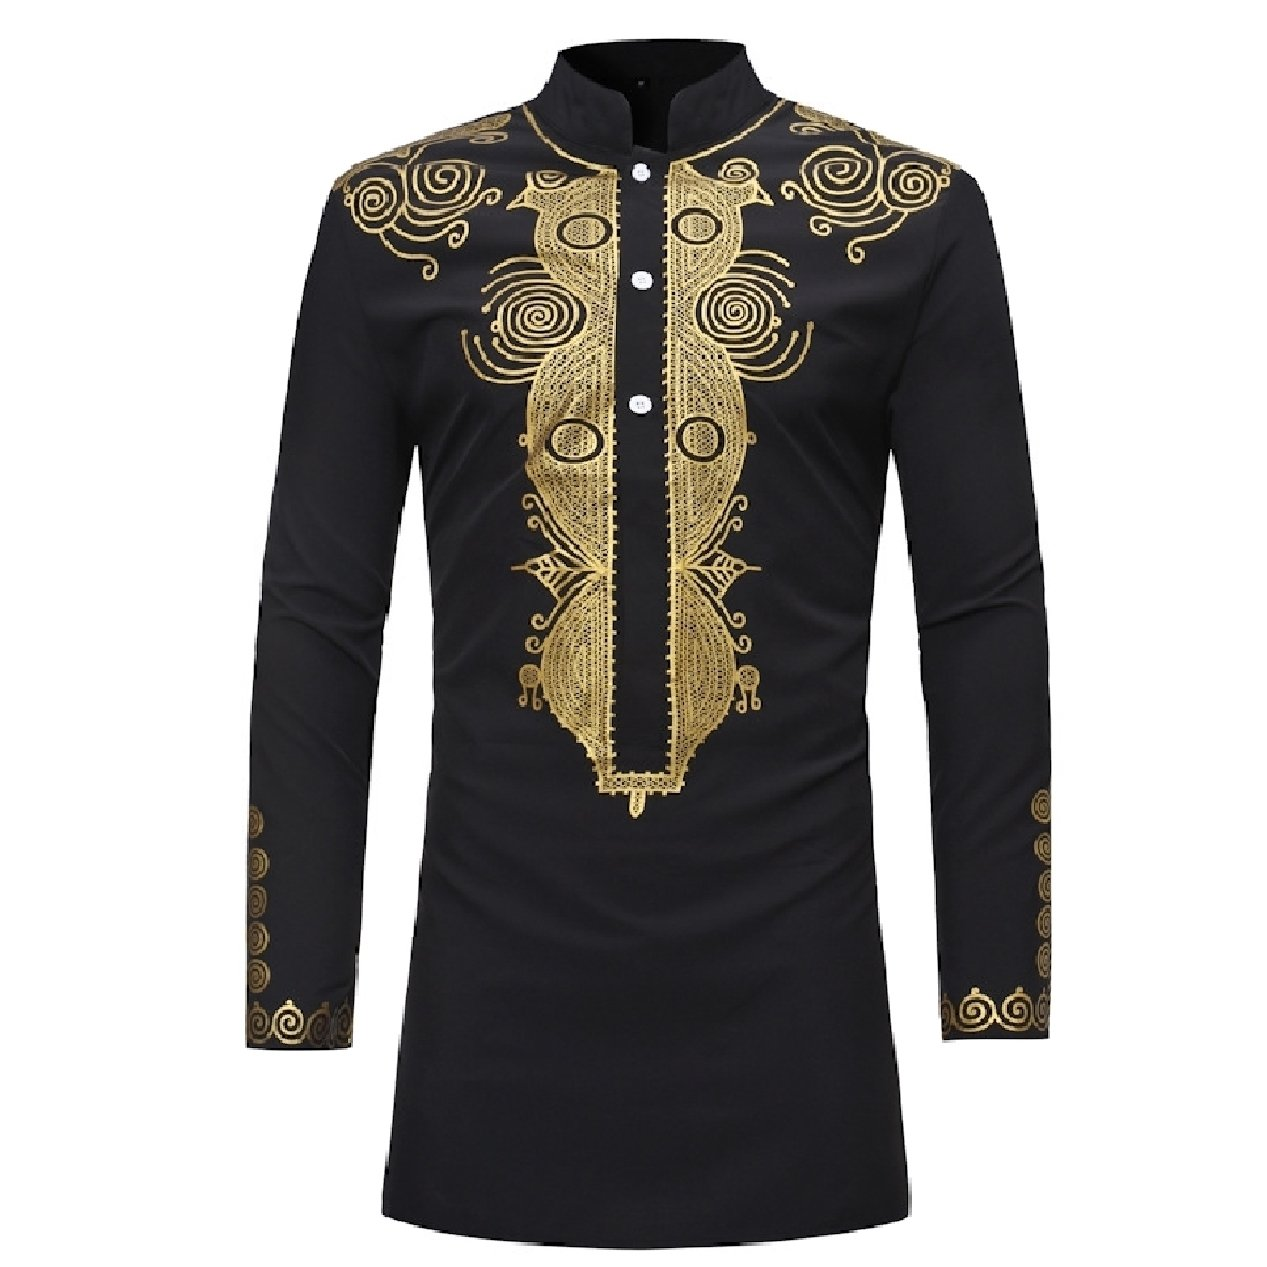 XiaoShop Mens African Style Tops Stand Collar Long Sleeve Mid-Long Shirt